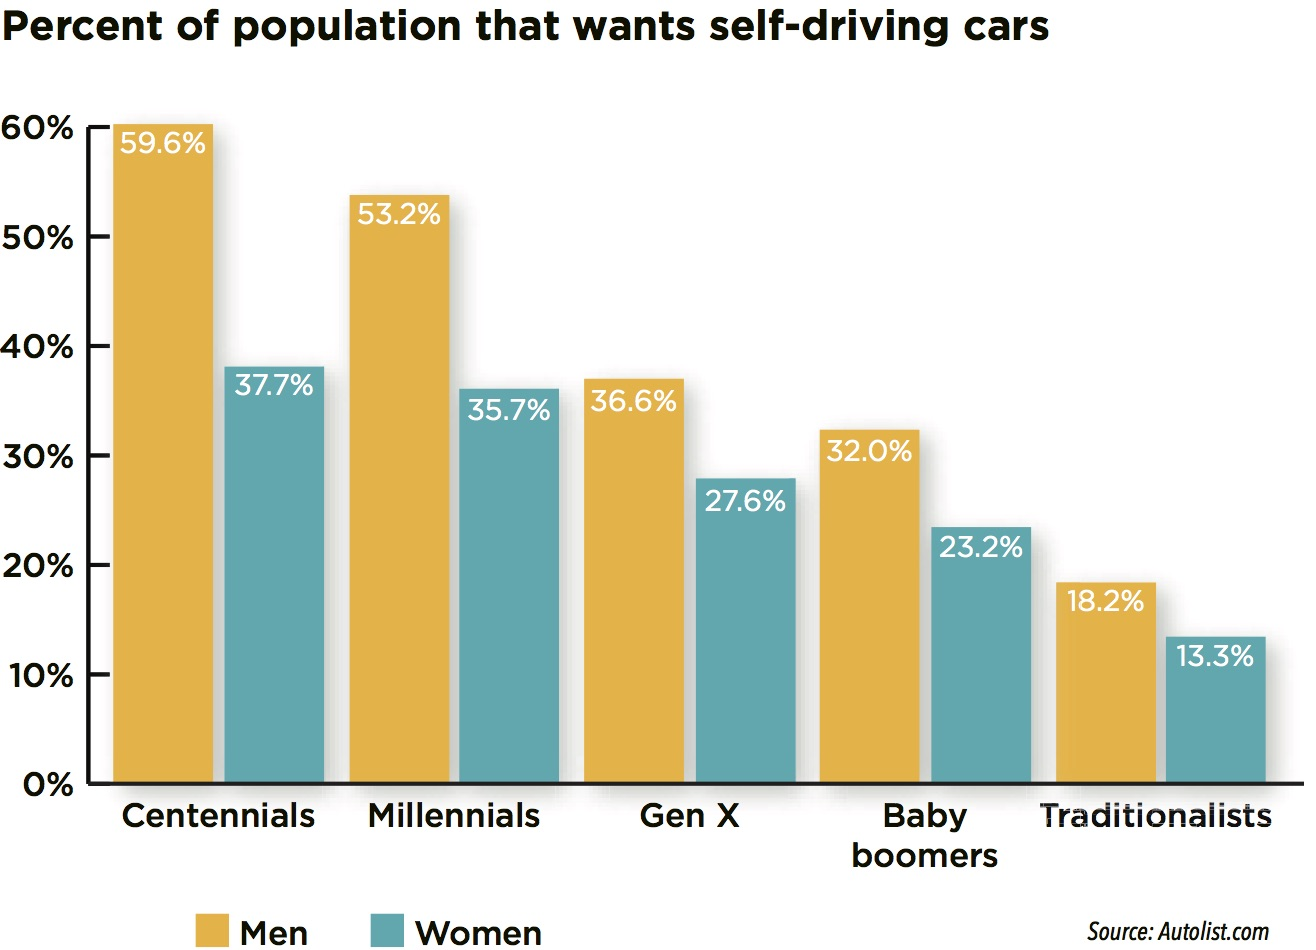 A Self Driving Car These Percentages Are Indicative Both Of Recent Technological Advances And Change In Perception What It Means To Own